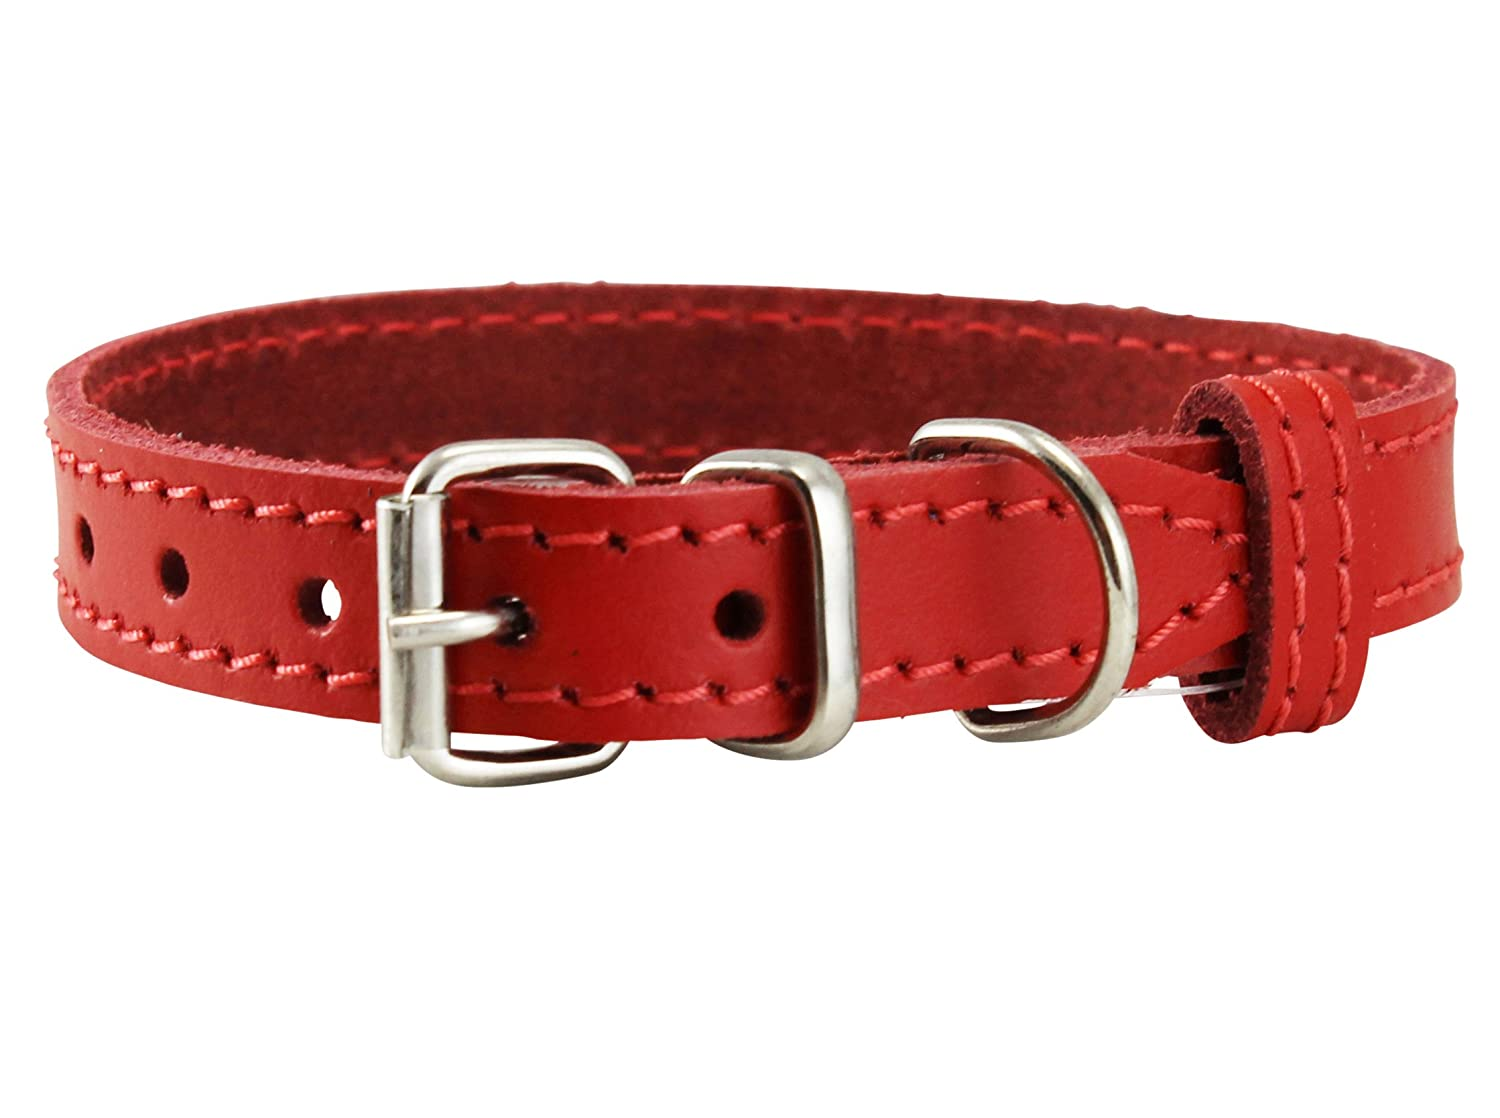 Neck  8\ Genuine Leather Dog Collar for Smalles Dogs and Puppies 3 Sizes Red (Neck  8 -9.75 ; 3 8  Wide)